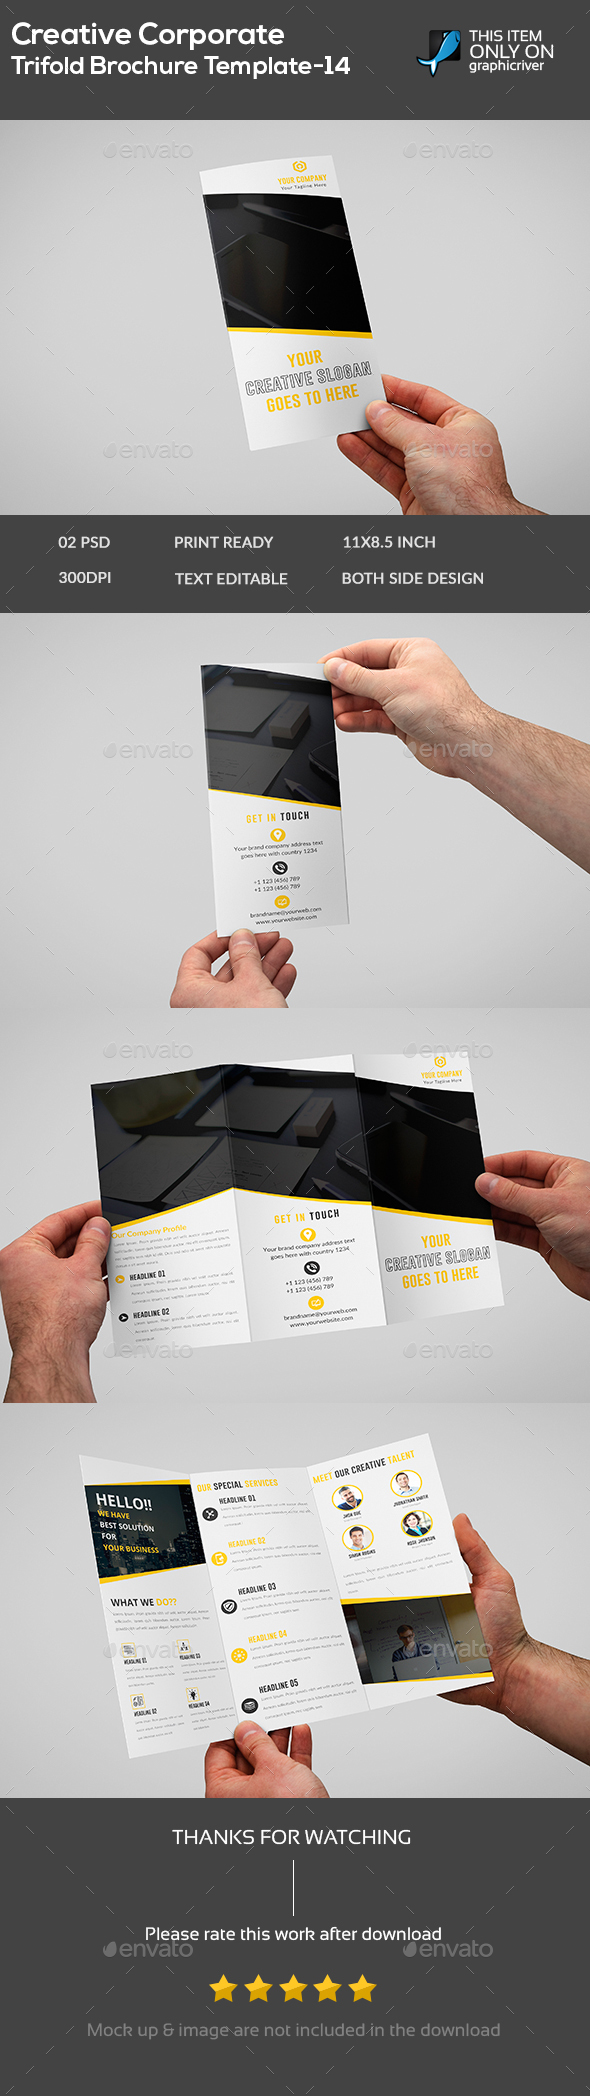 Creative Corporate Brochure Template -14 - Brochures Print Templates